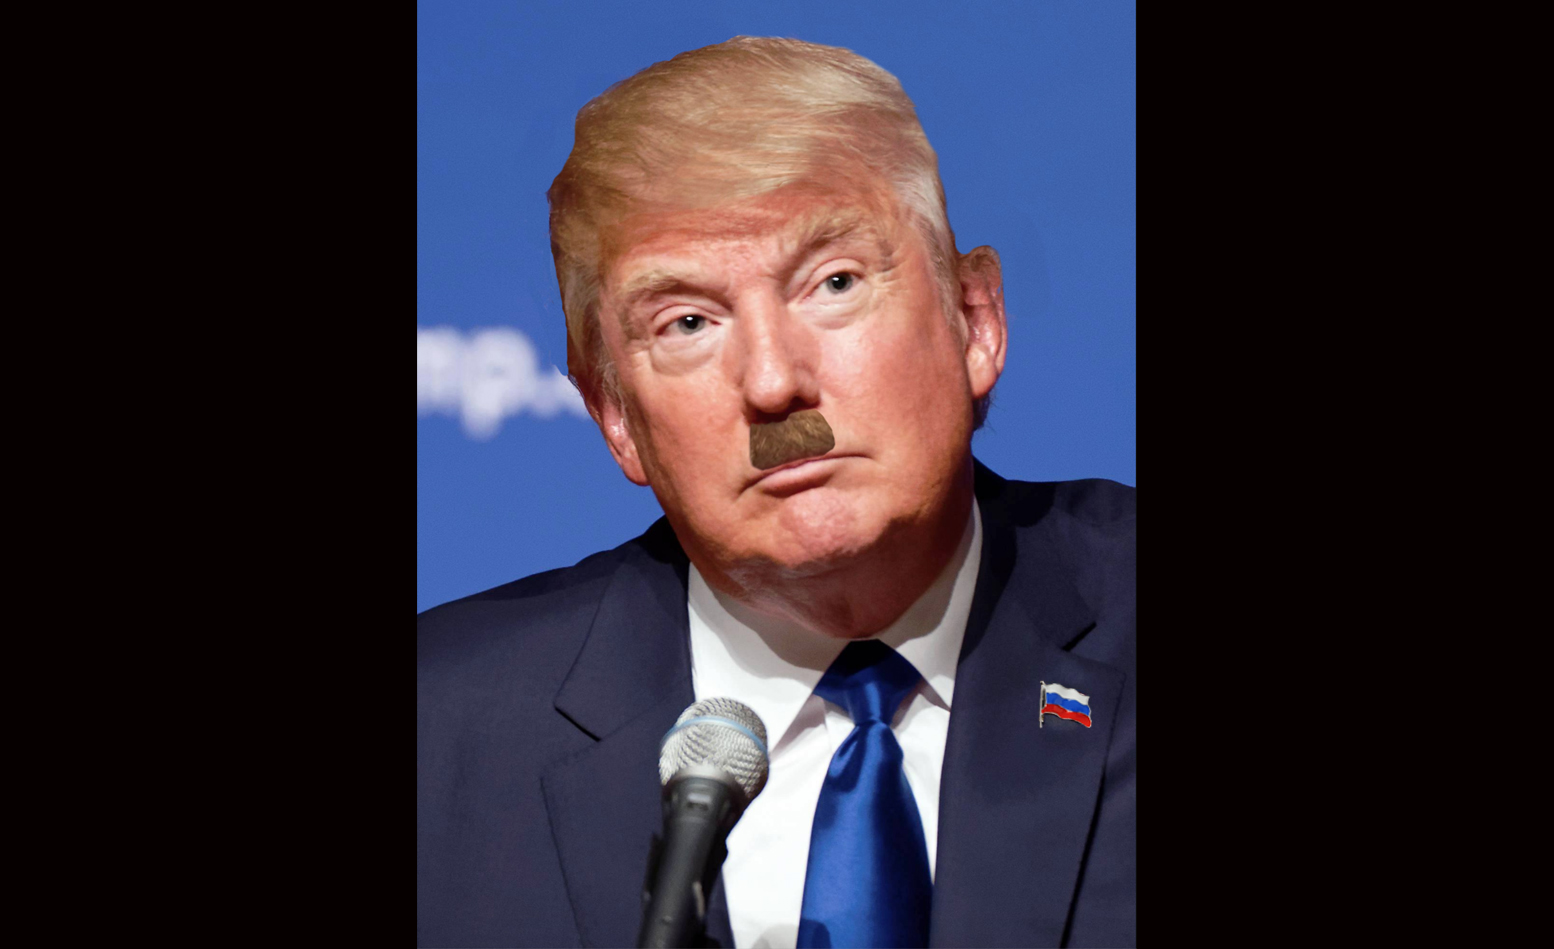 Donald Trump Haircut Mustache for RNC